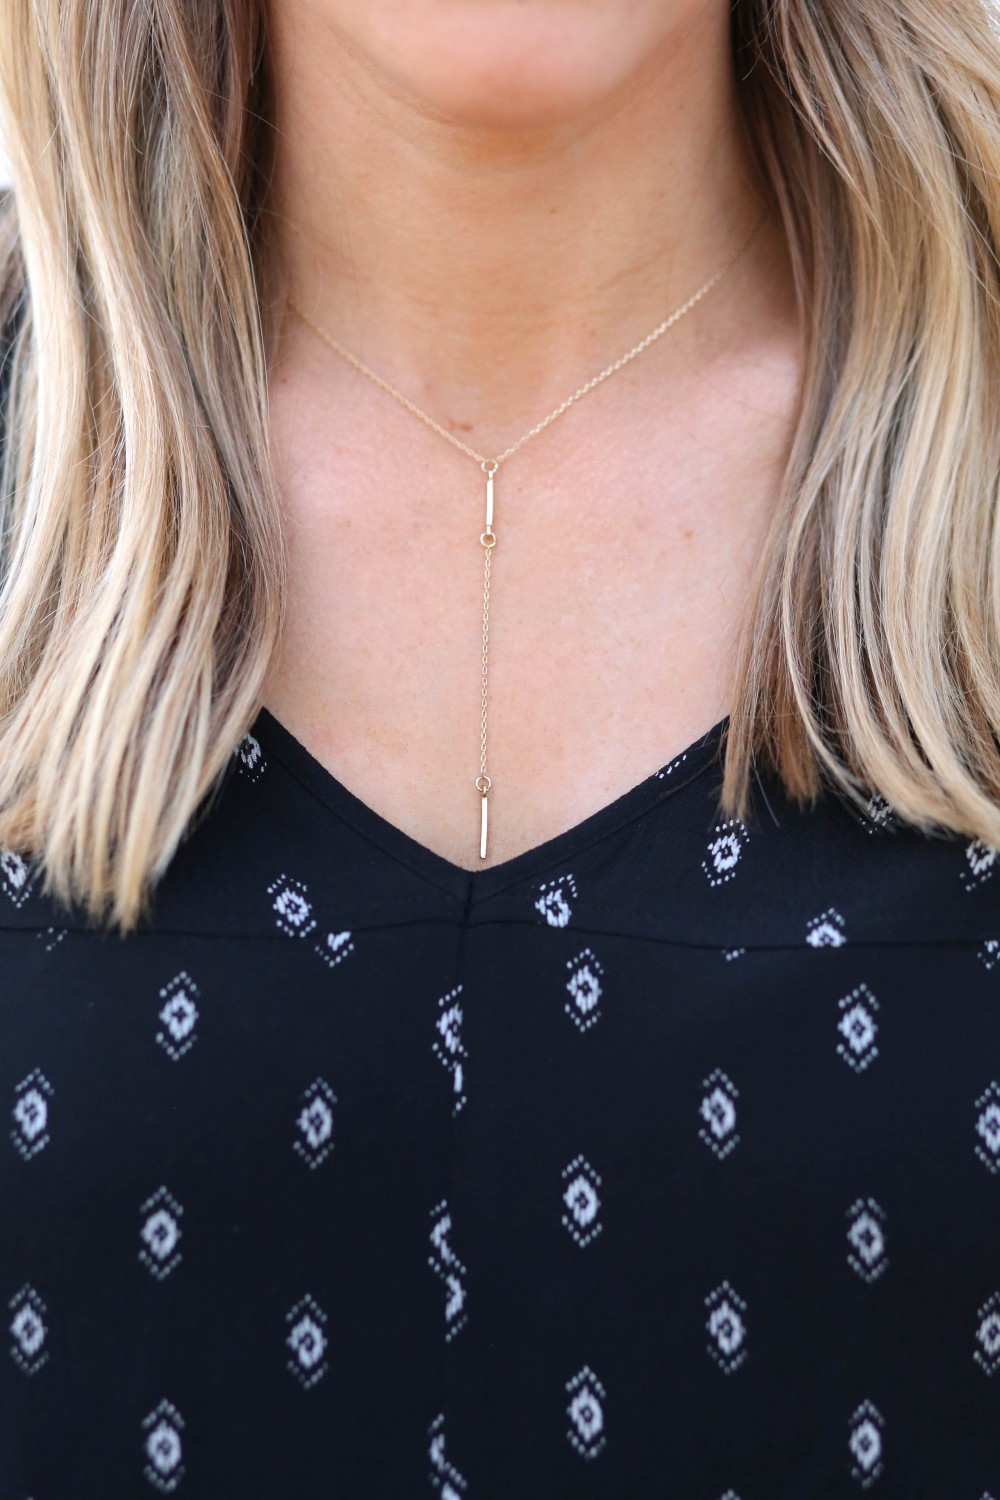 Dainty gold drop necklace | Adorned With Love